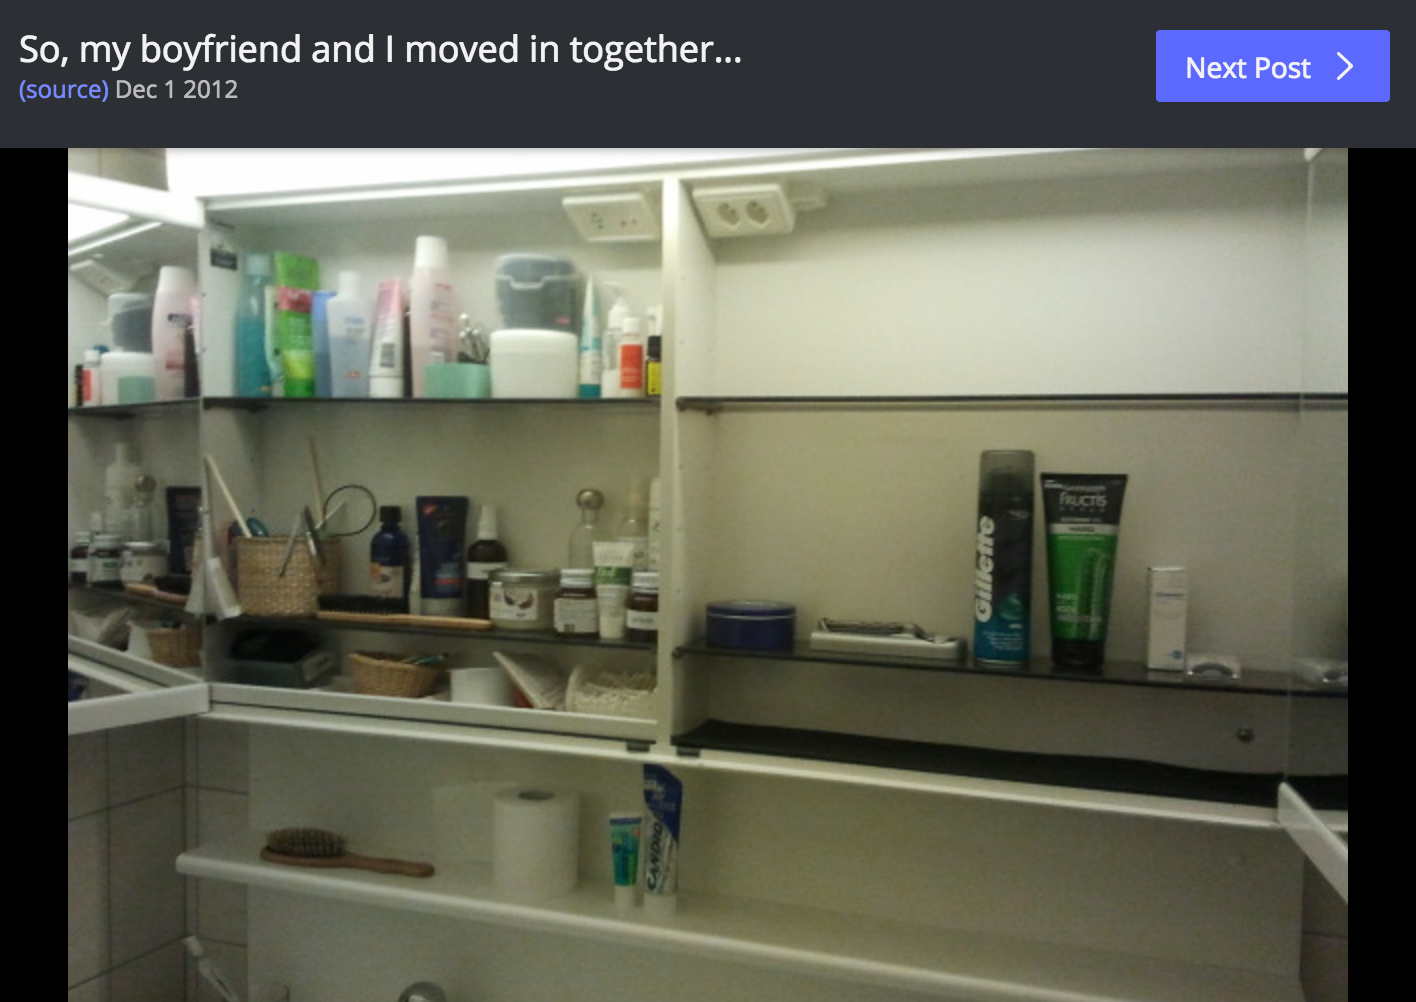 21 Things You'll Only Get if You've Been Together for a Long Time